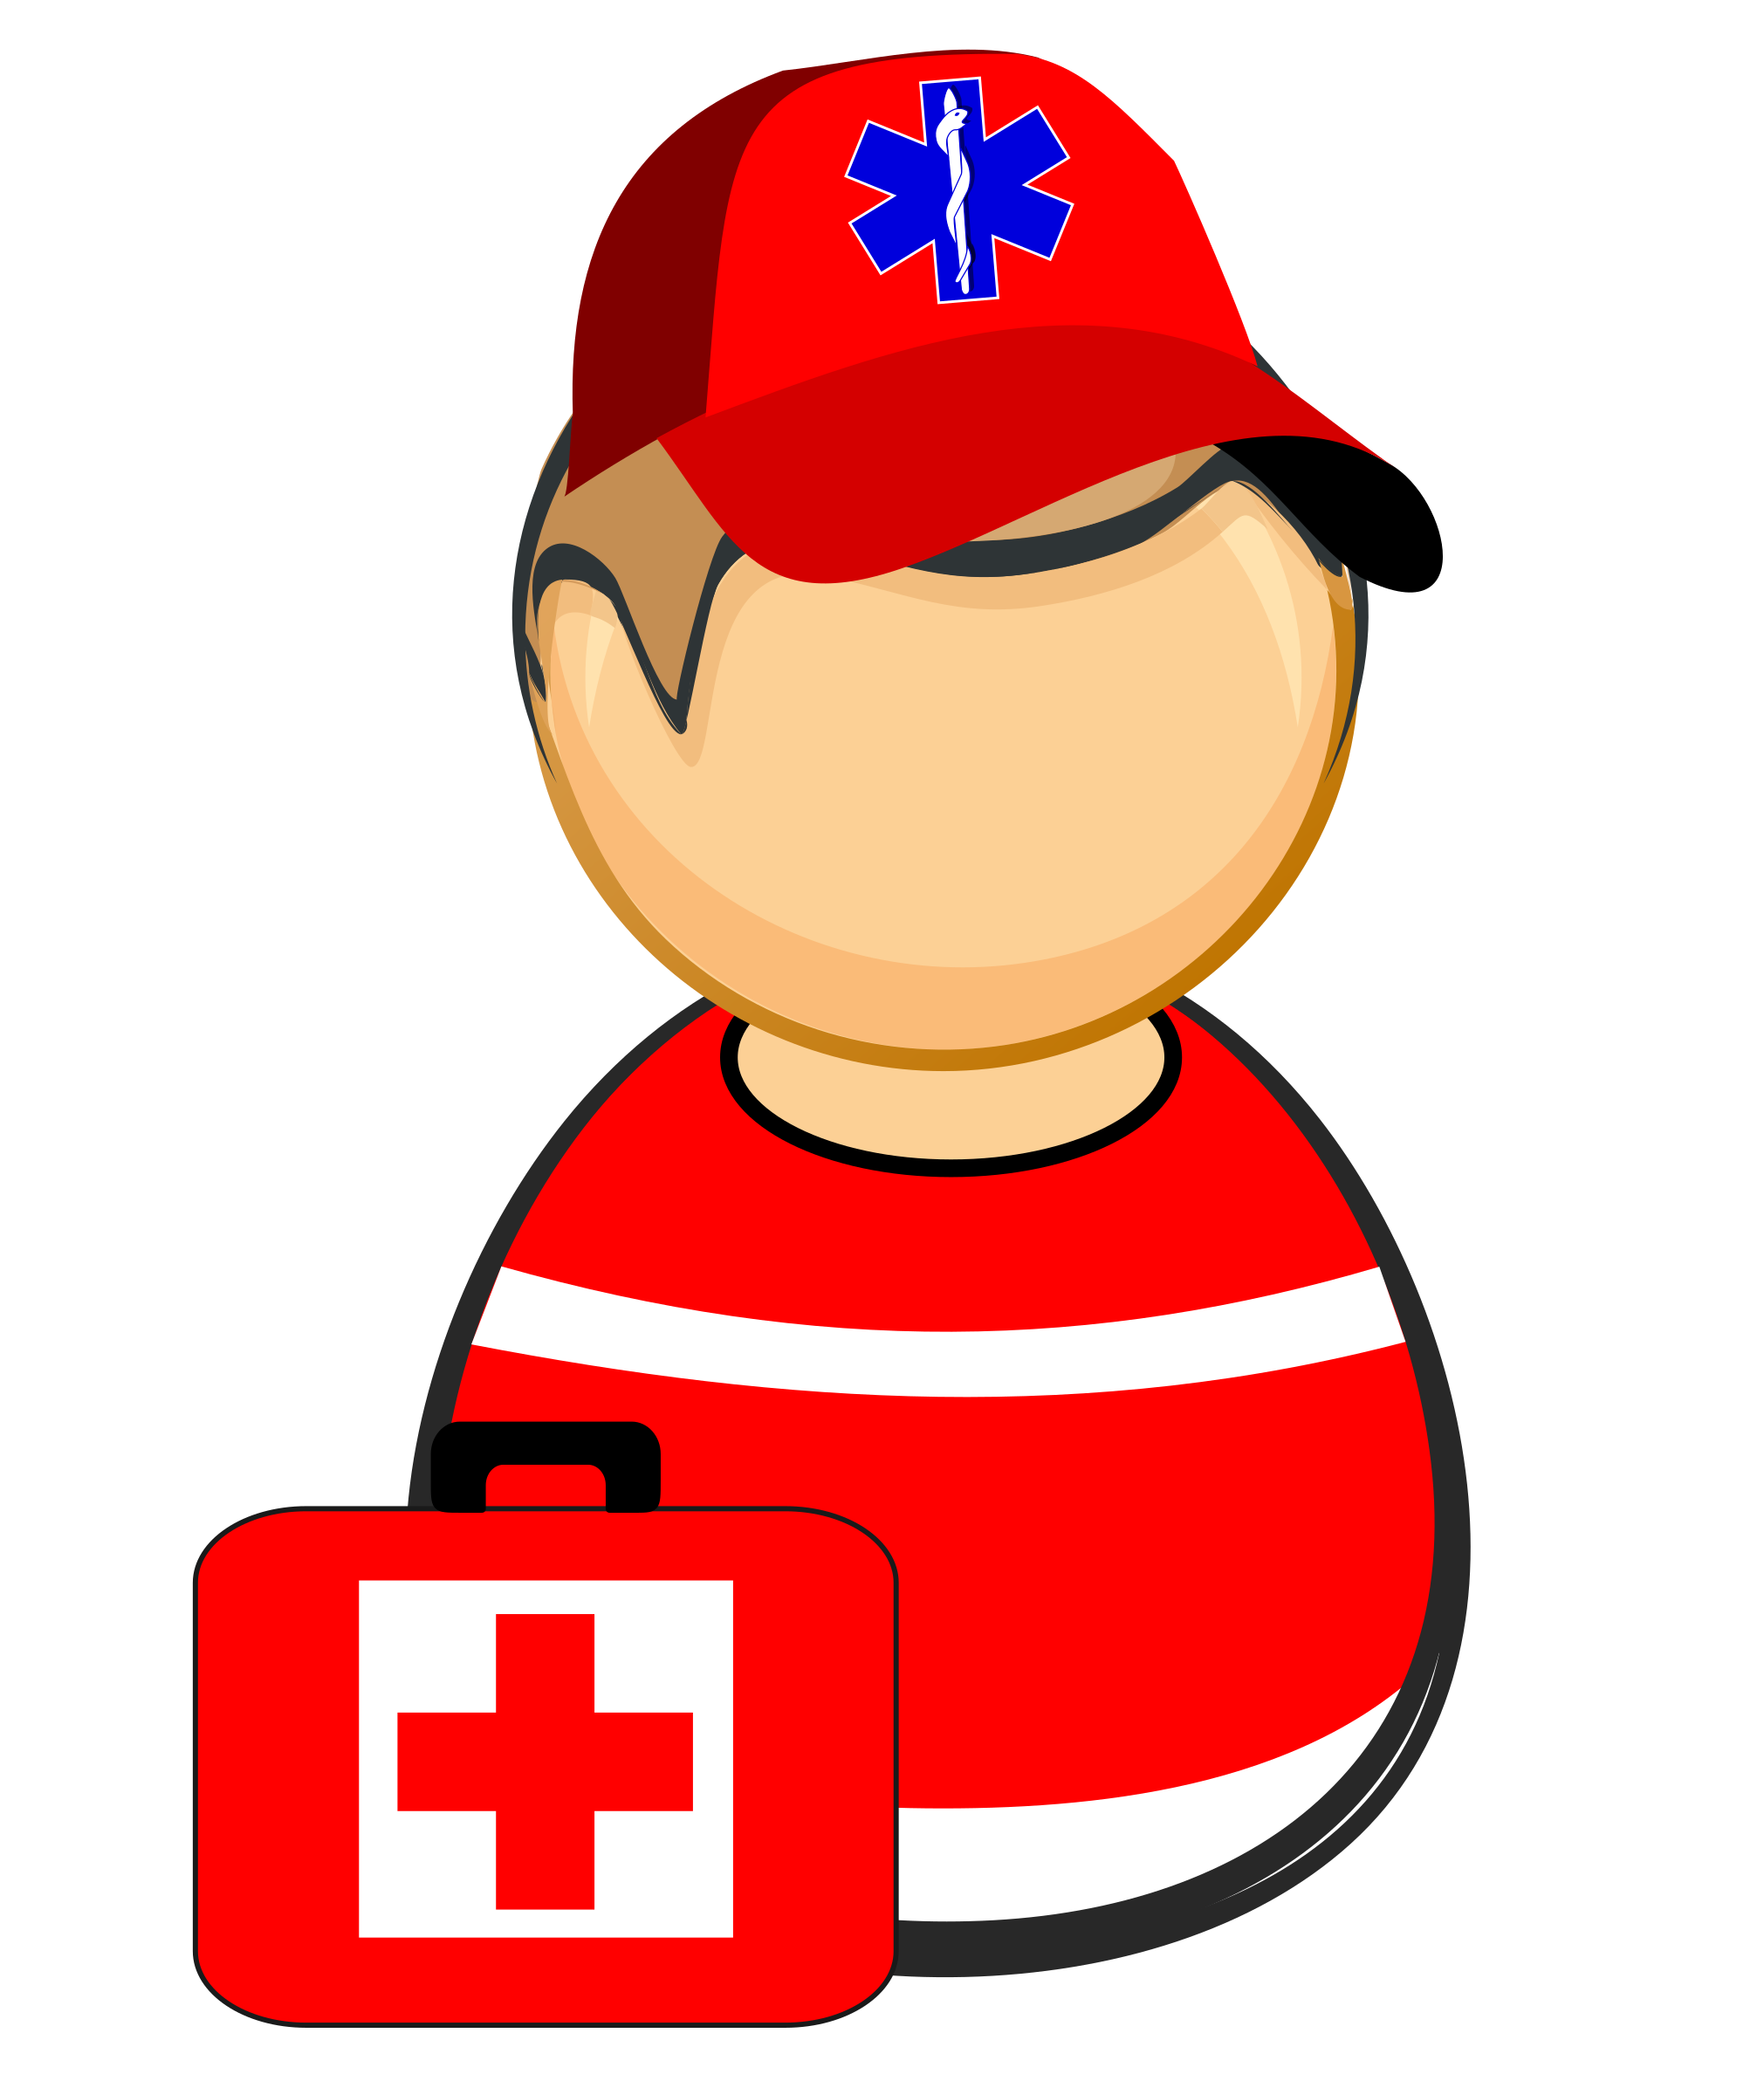 First responders clipart with a cross image royalty free download Clipart - First responder - paramedic image royalty free download